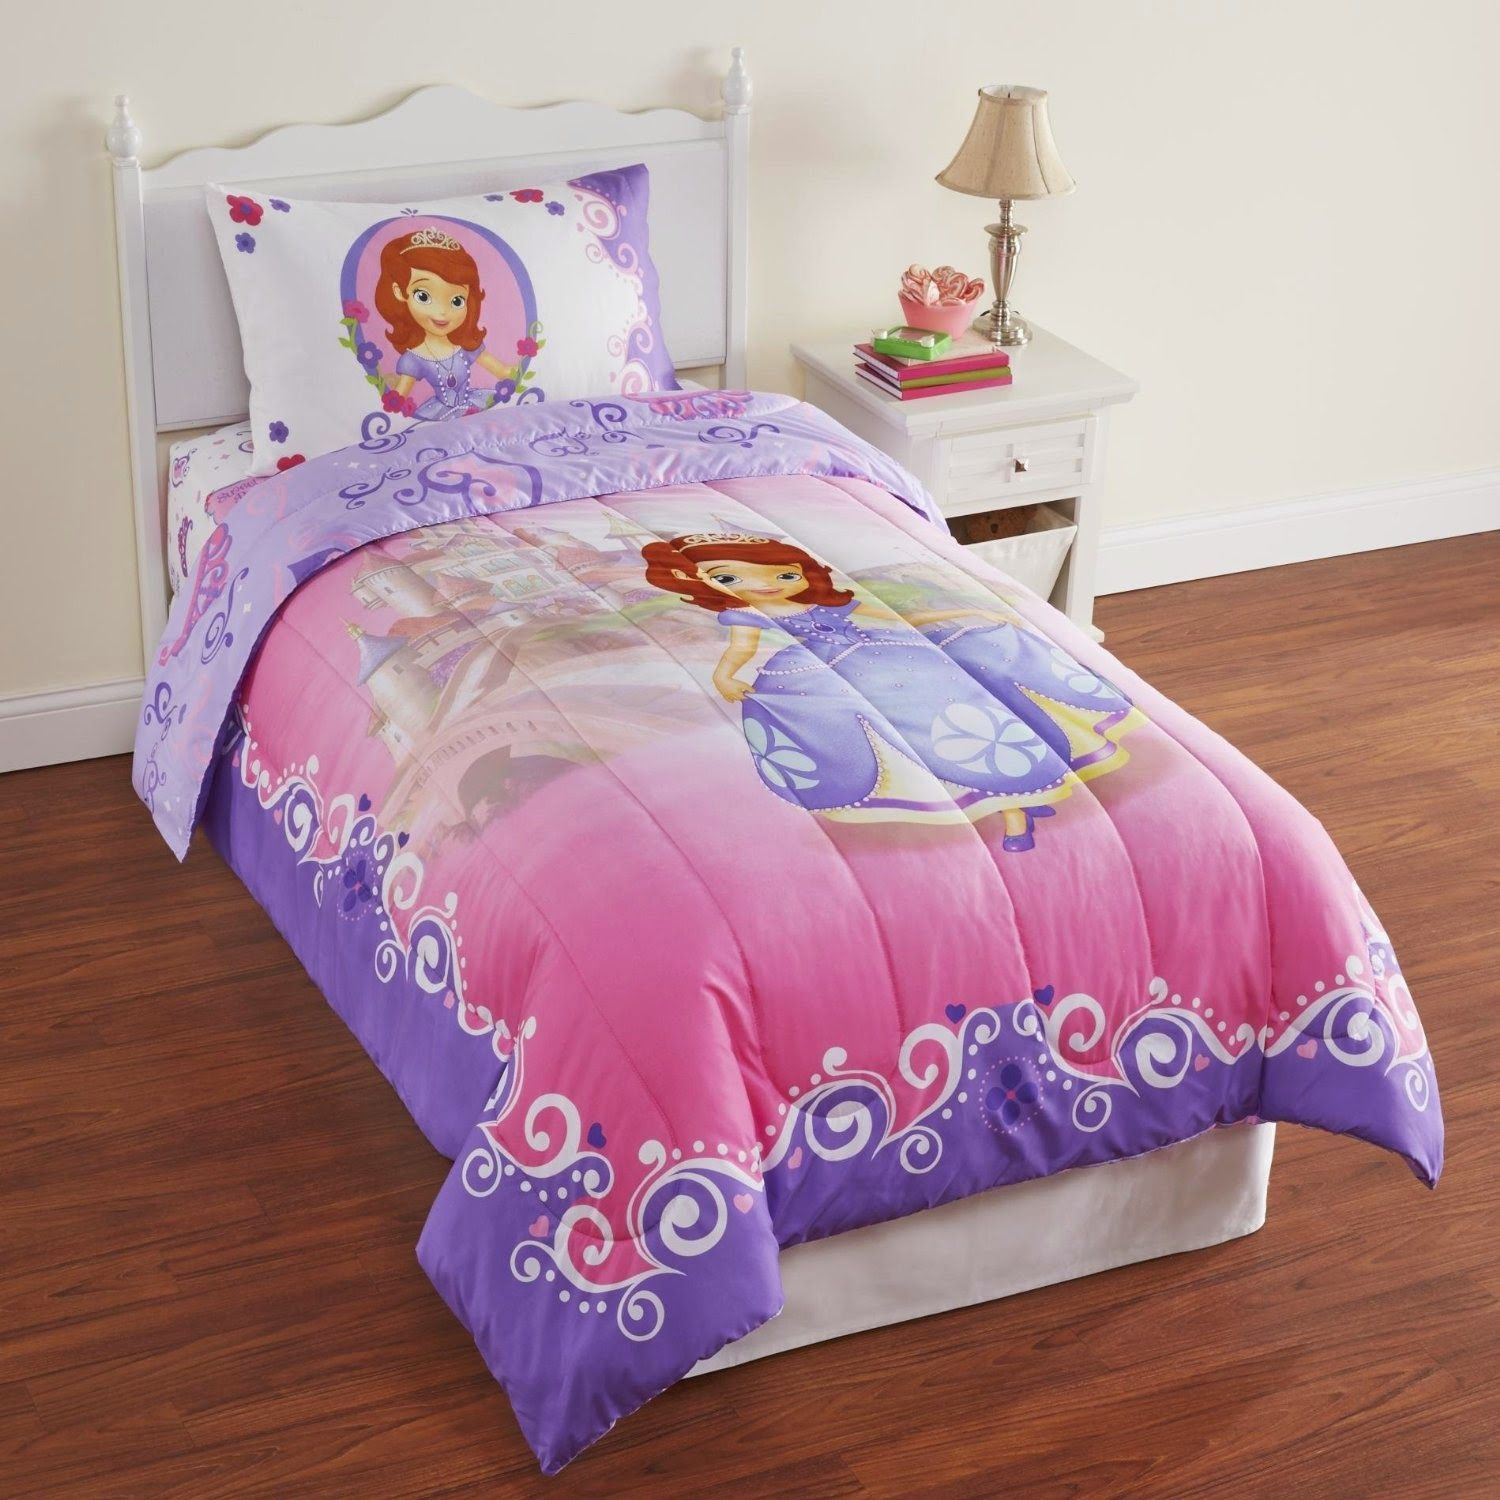 Bedroom decor ideas and designs top eight princess sofia for Princess themed bed